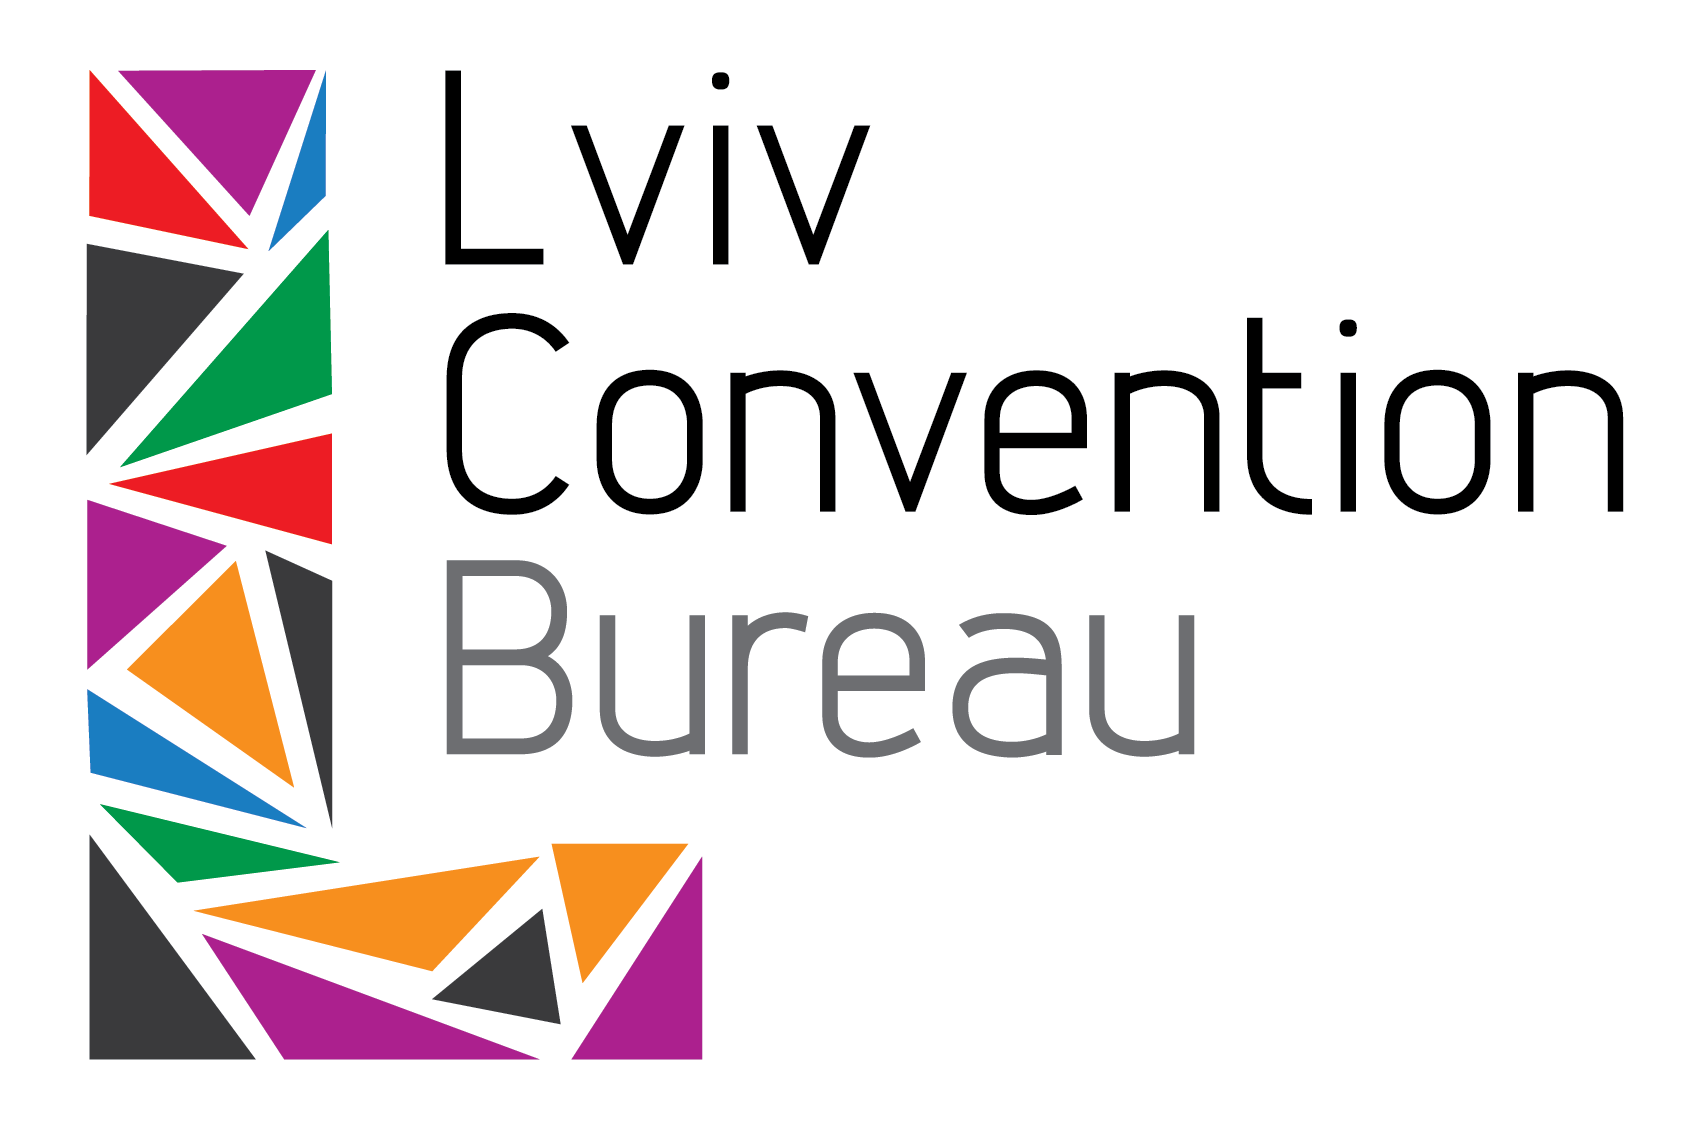 Lviv Convention Bureau